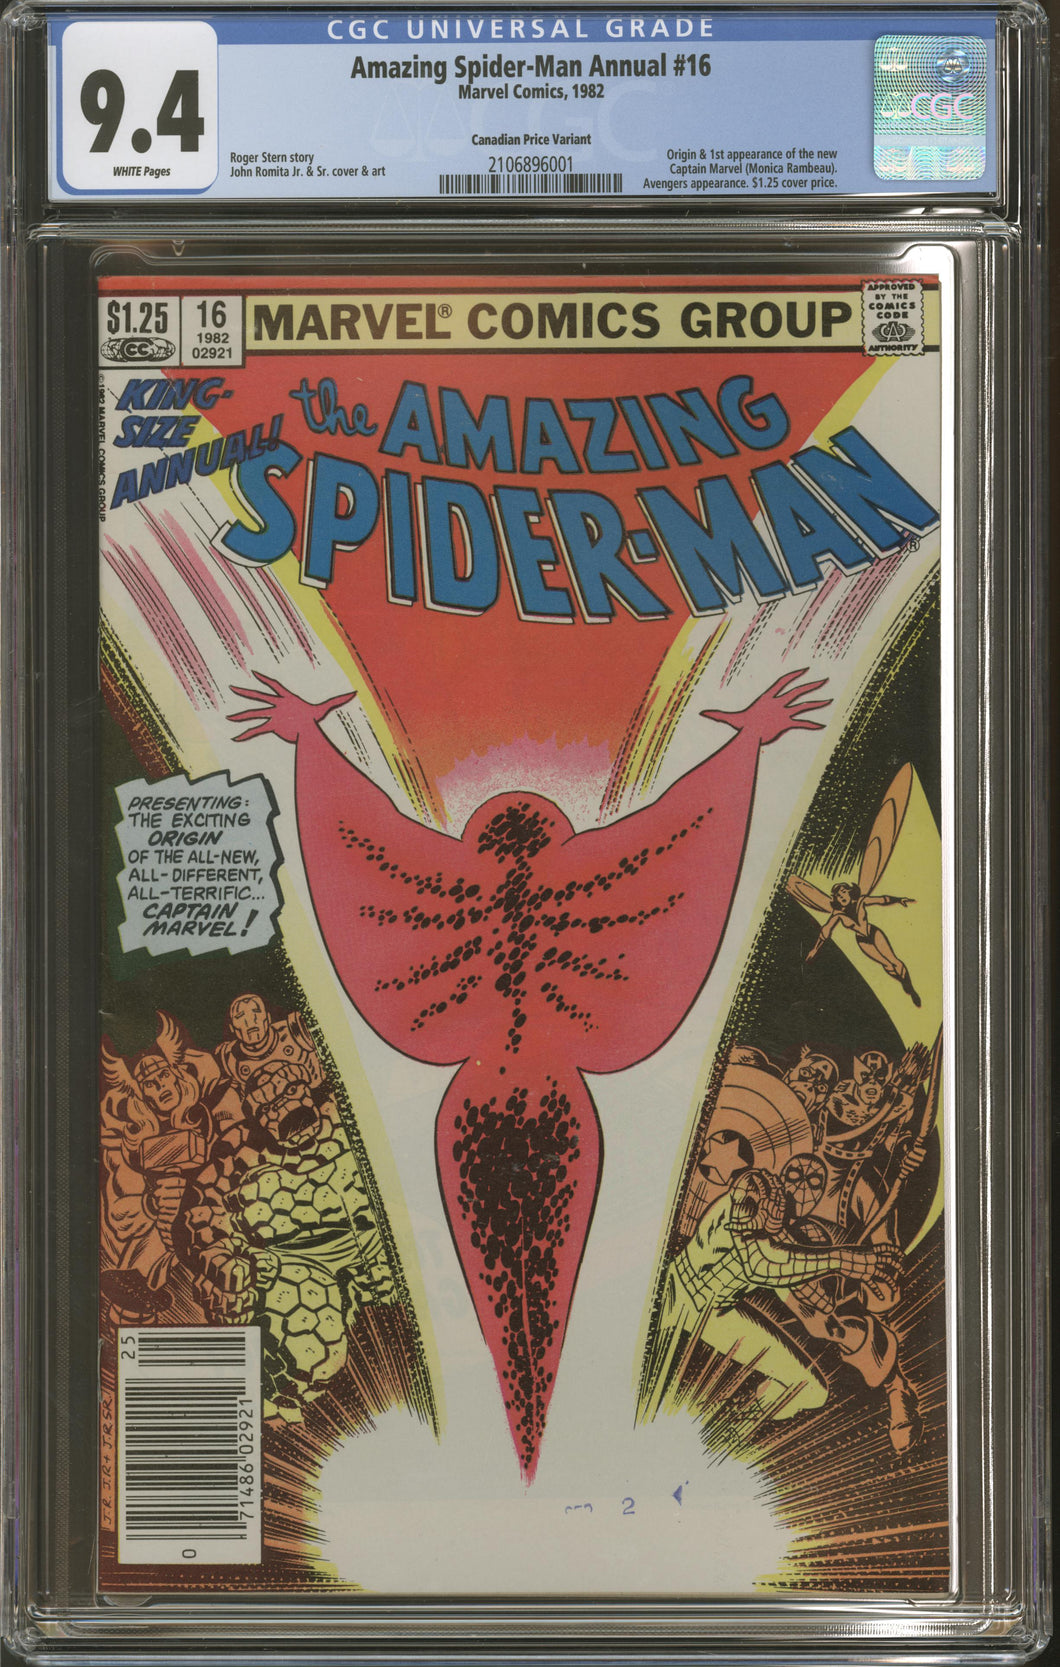 AMAZING SPIDER-MAN ANNUAL #16 (Marvel 1982) CGC 9.4 NM RARE Canadian Price Variant